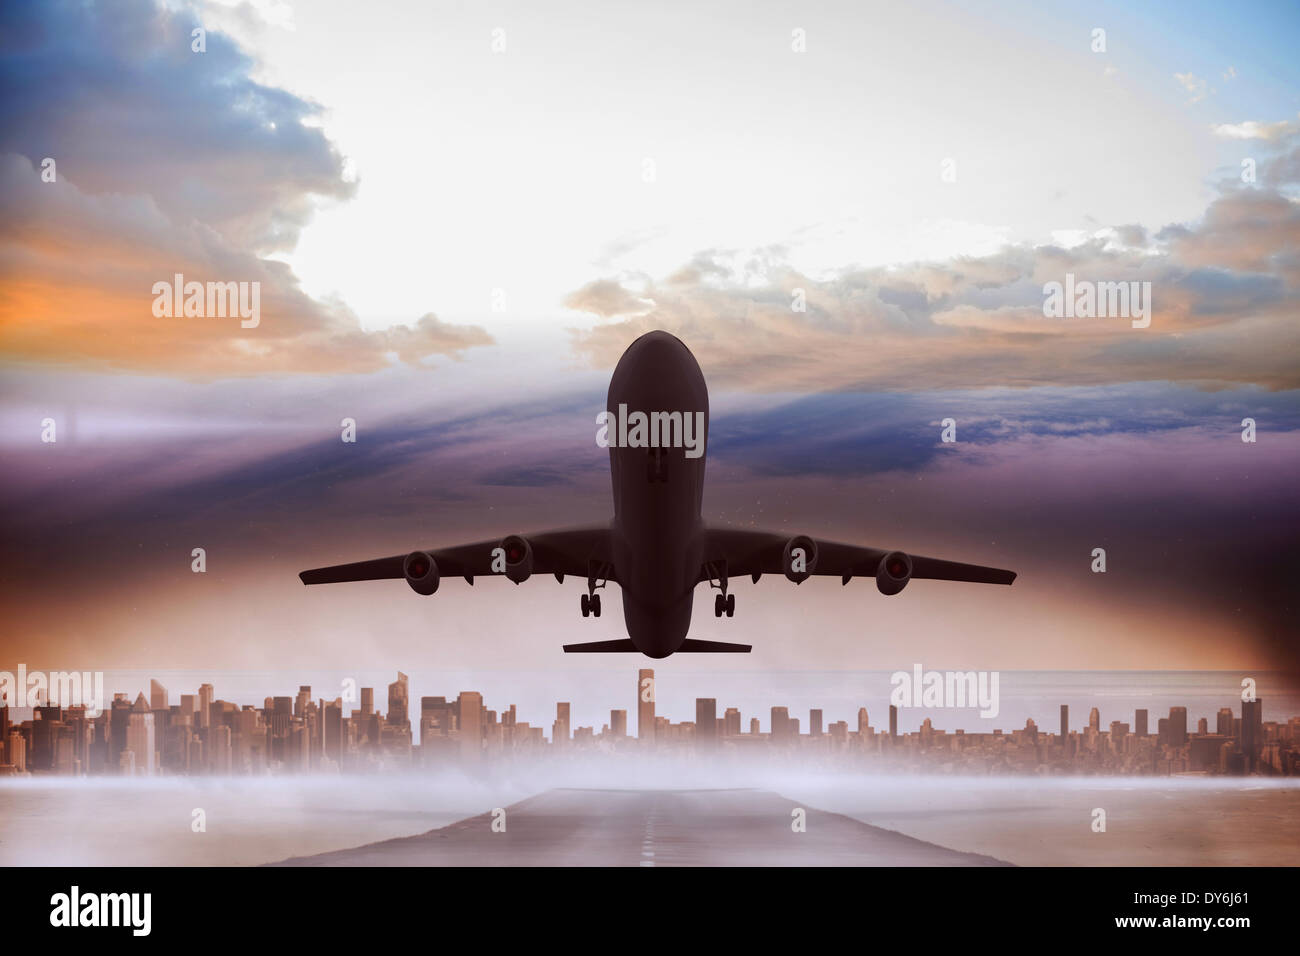 Composite image of graphic airplane - Stock Image